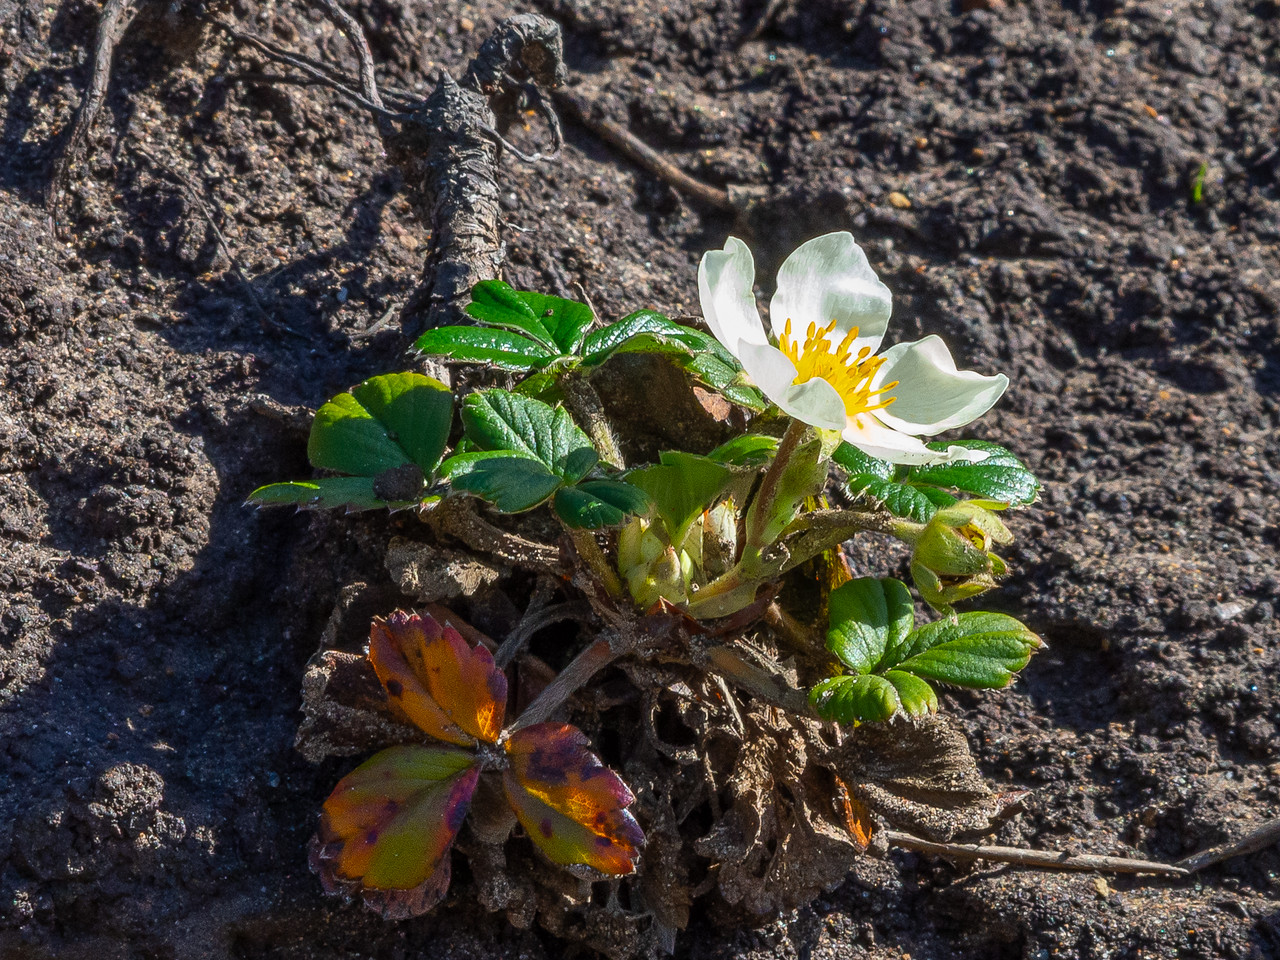 Fragaria chiloensis (Beach strawberry).  This was on a washed-out hillside on the way from the bluff down to the beach.  Pt. Reyes National Seashore, February 16. 2014.